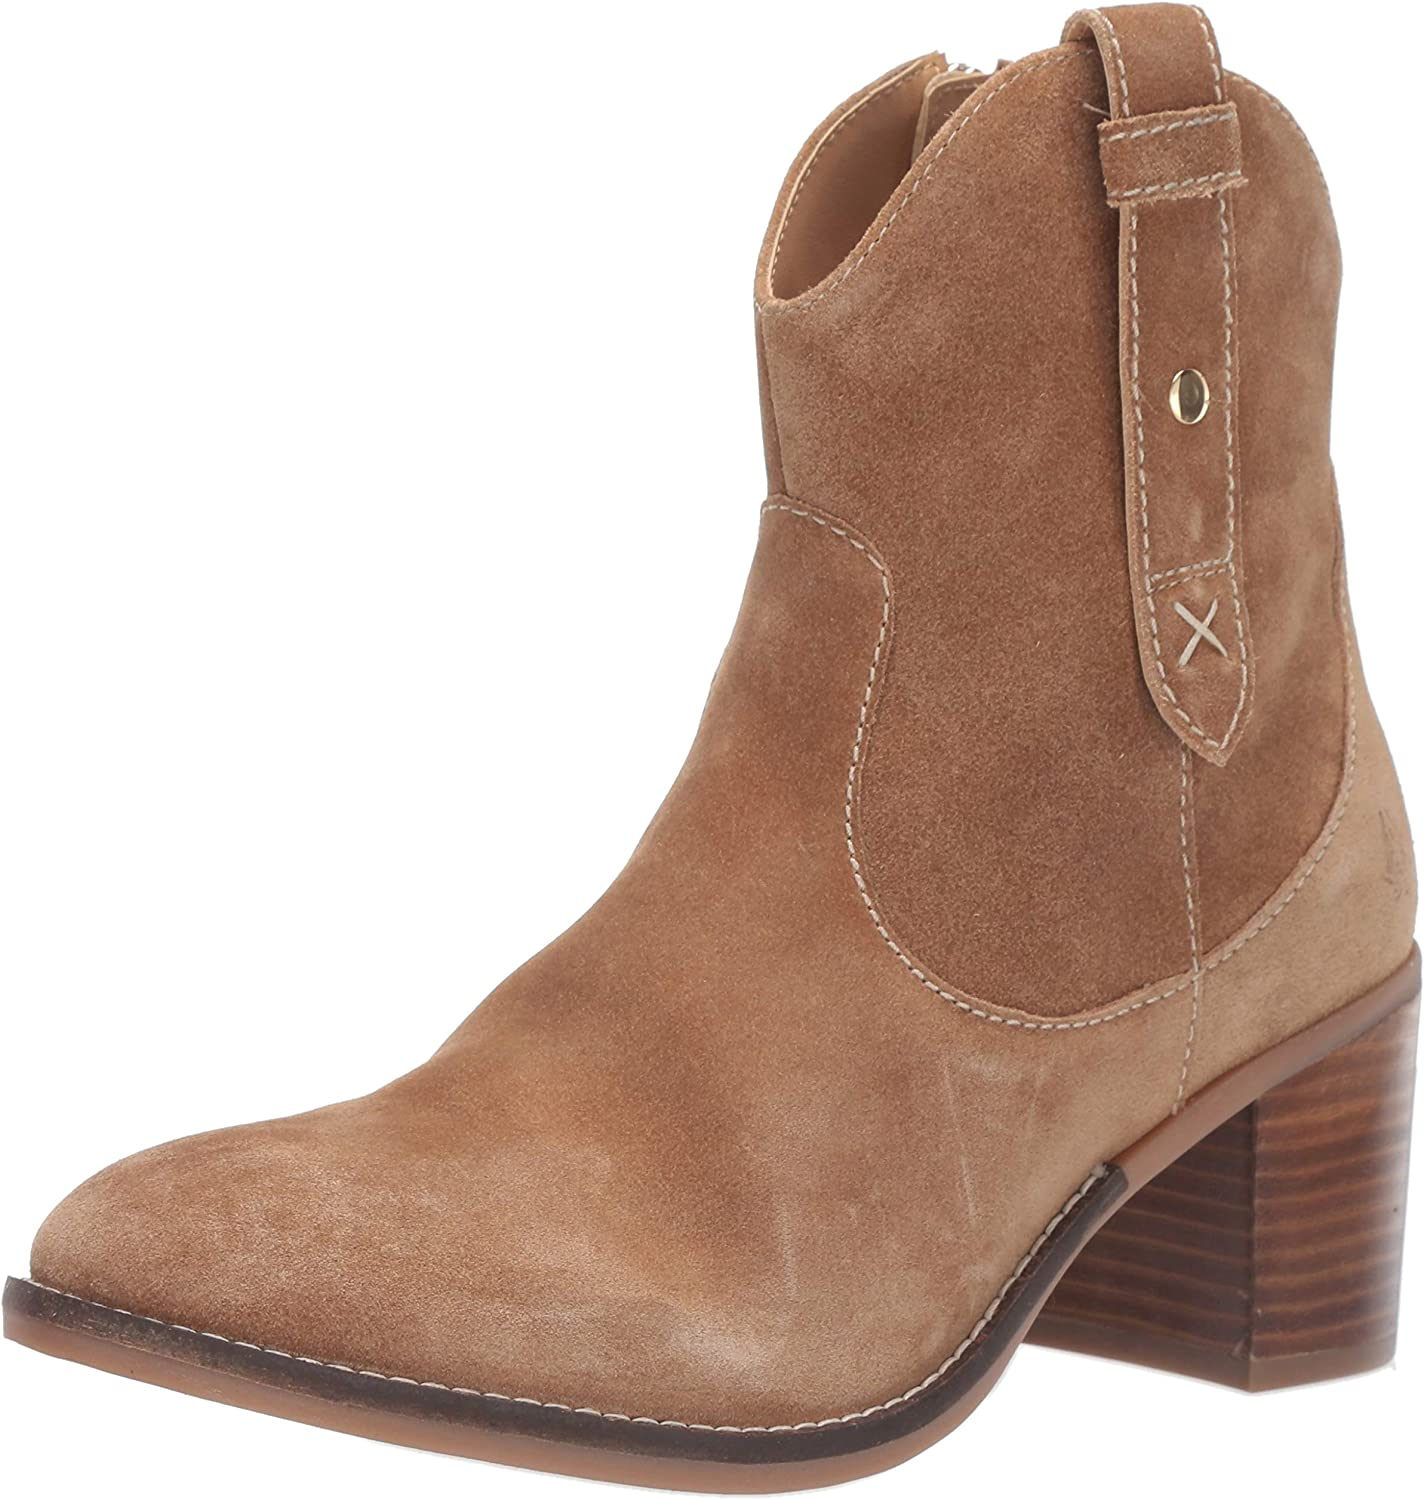 Hush Puppies Women's Hannah Mid Boot Ankle